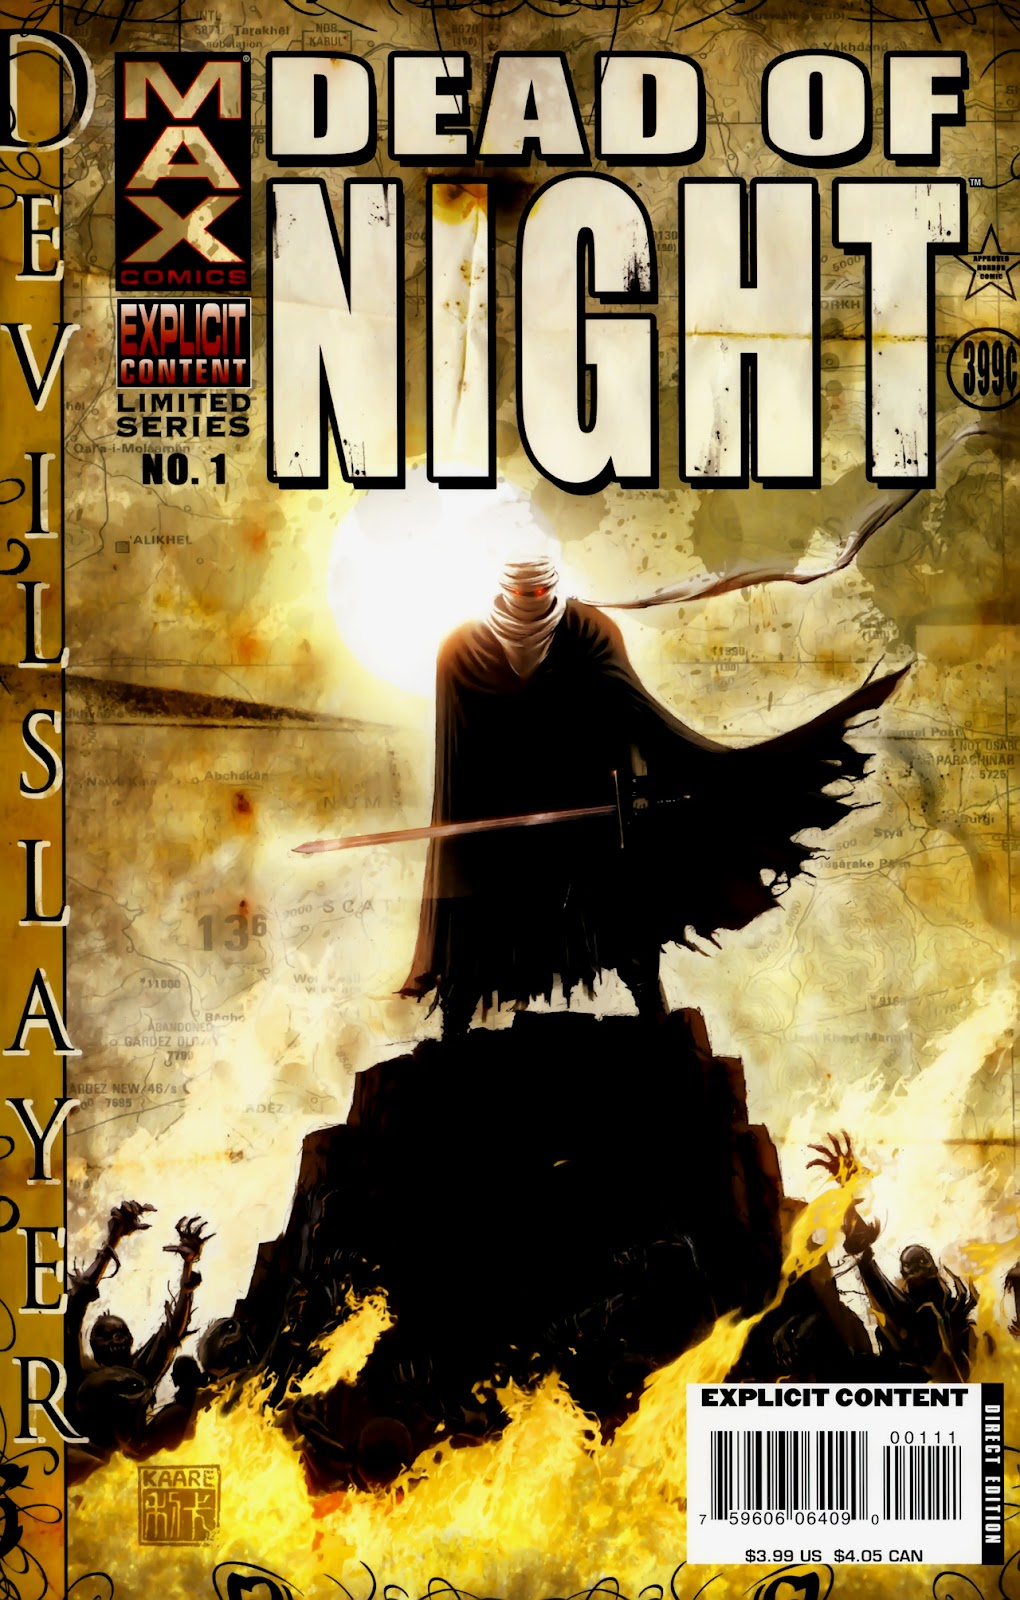 Dead of Night Featuring Devil-Slayer issue 1 - Page 1